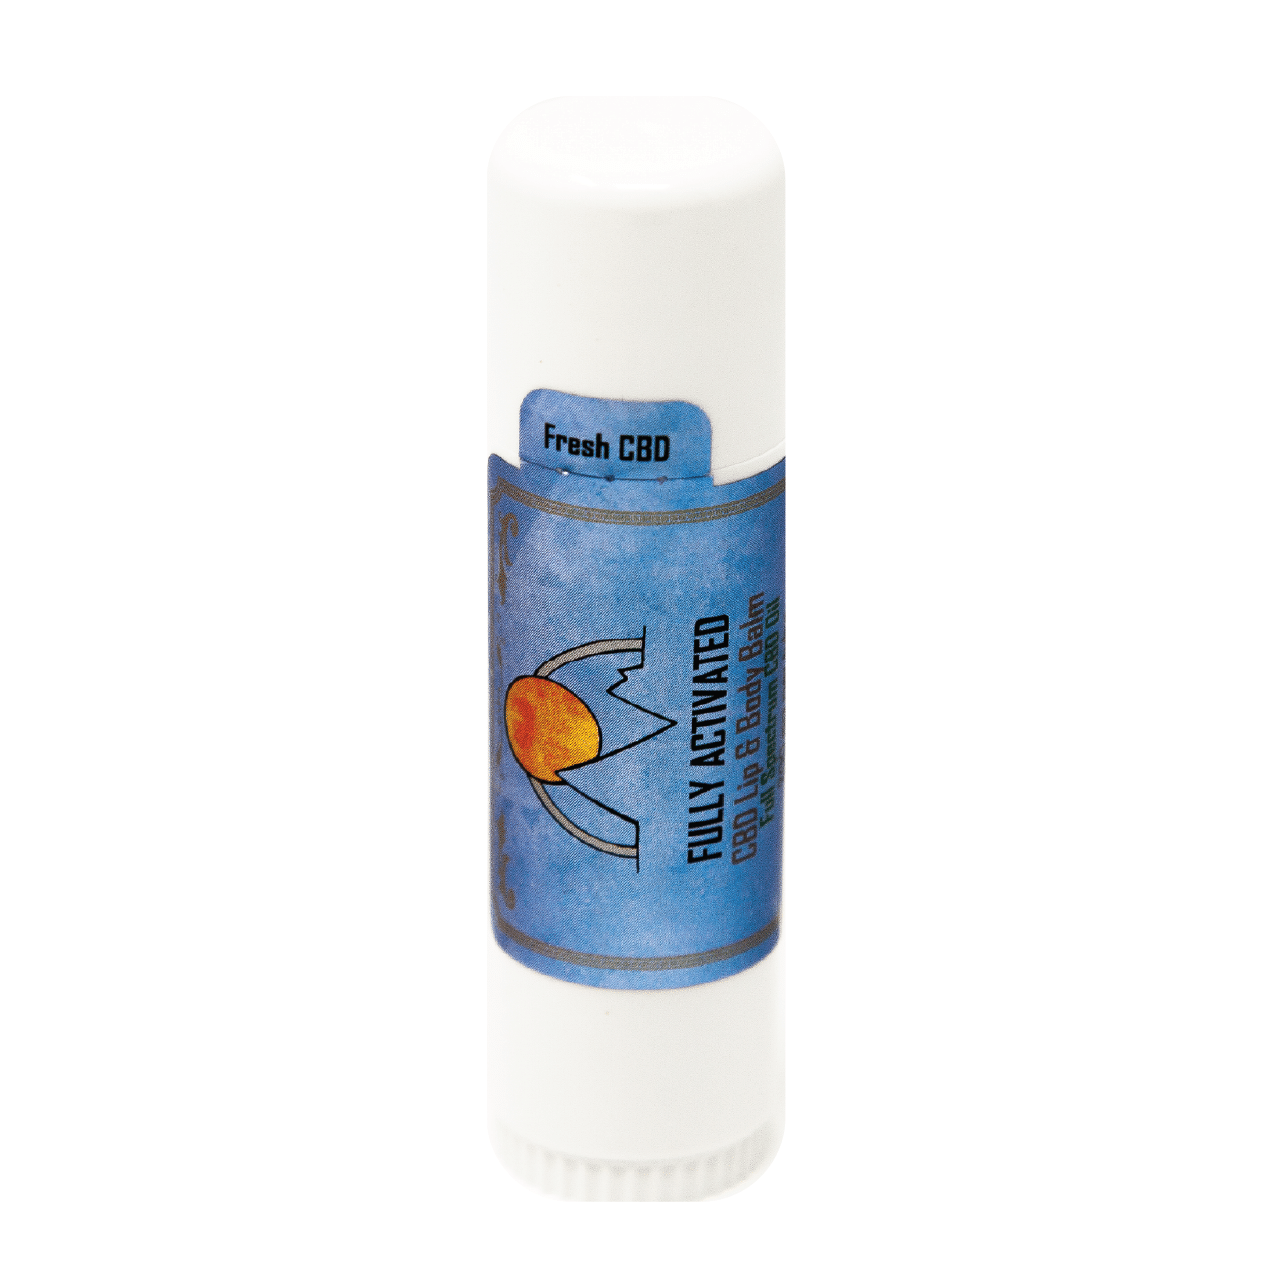 Image of Fully Activated – Lip and Body Balm